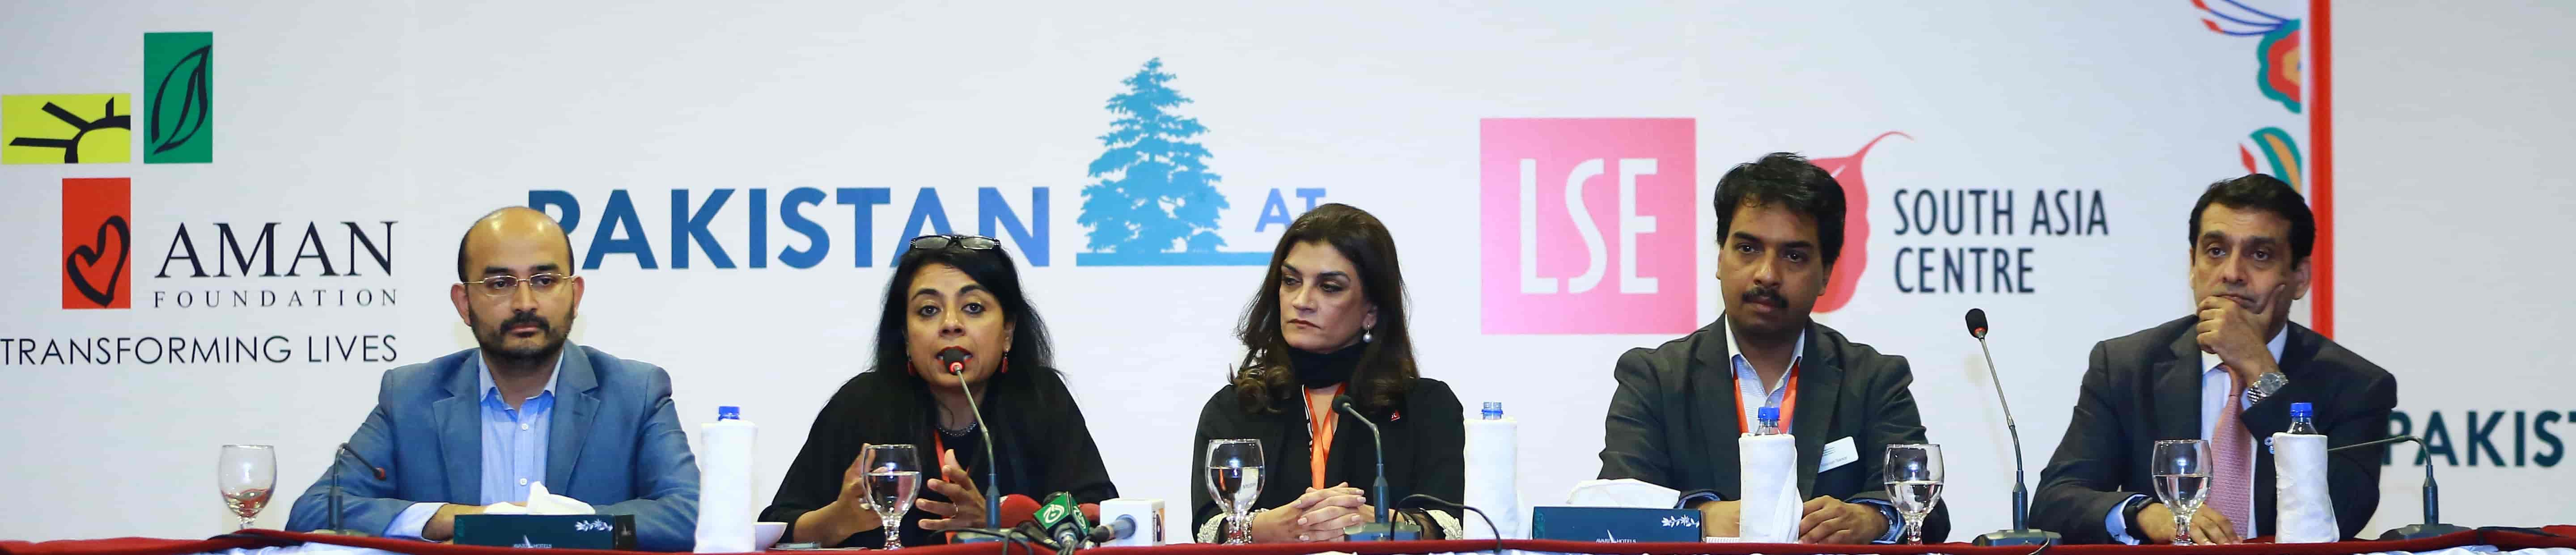 press conference at LSE Pakistan Summit